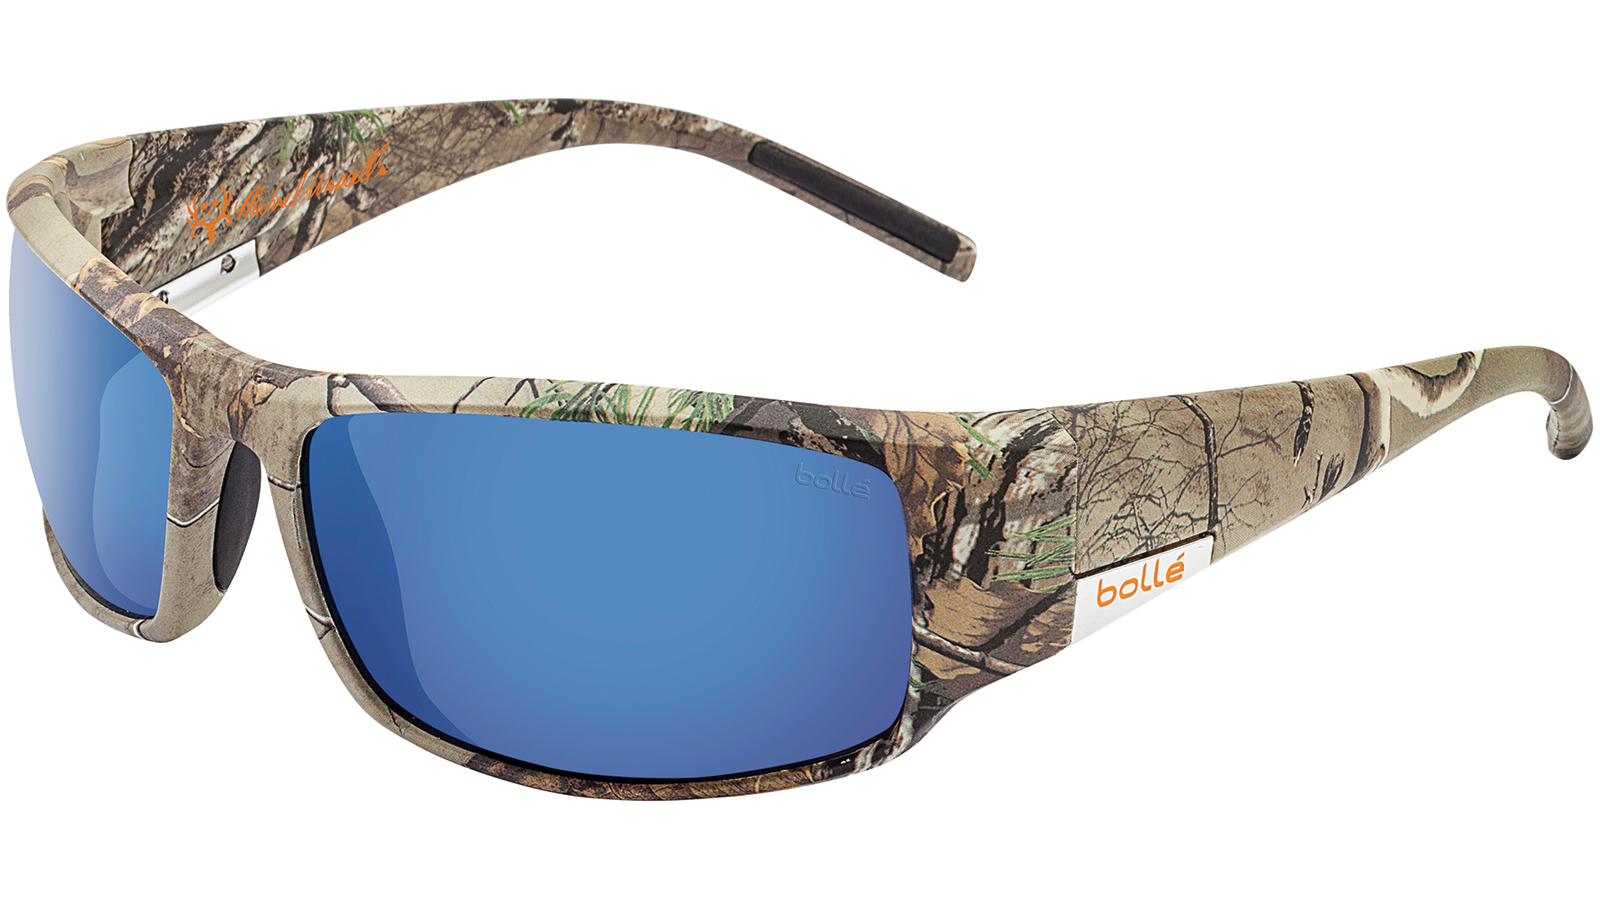 Bolle 12037 King Shooting|Sporting Glasses Realtree Xtra